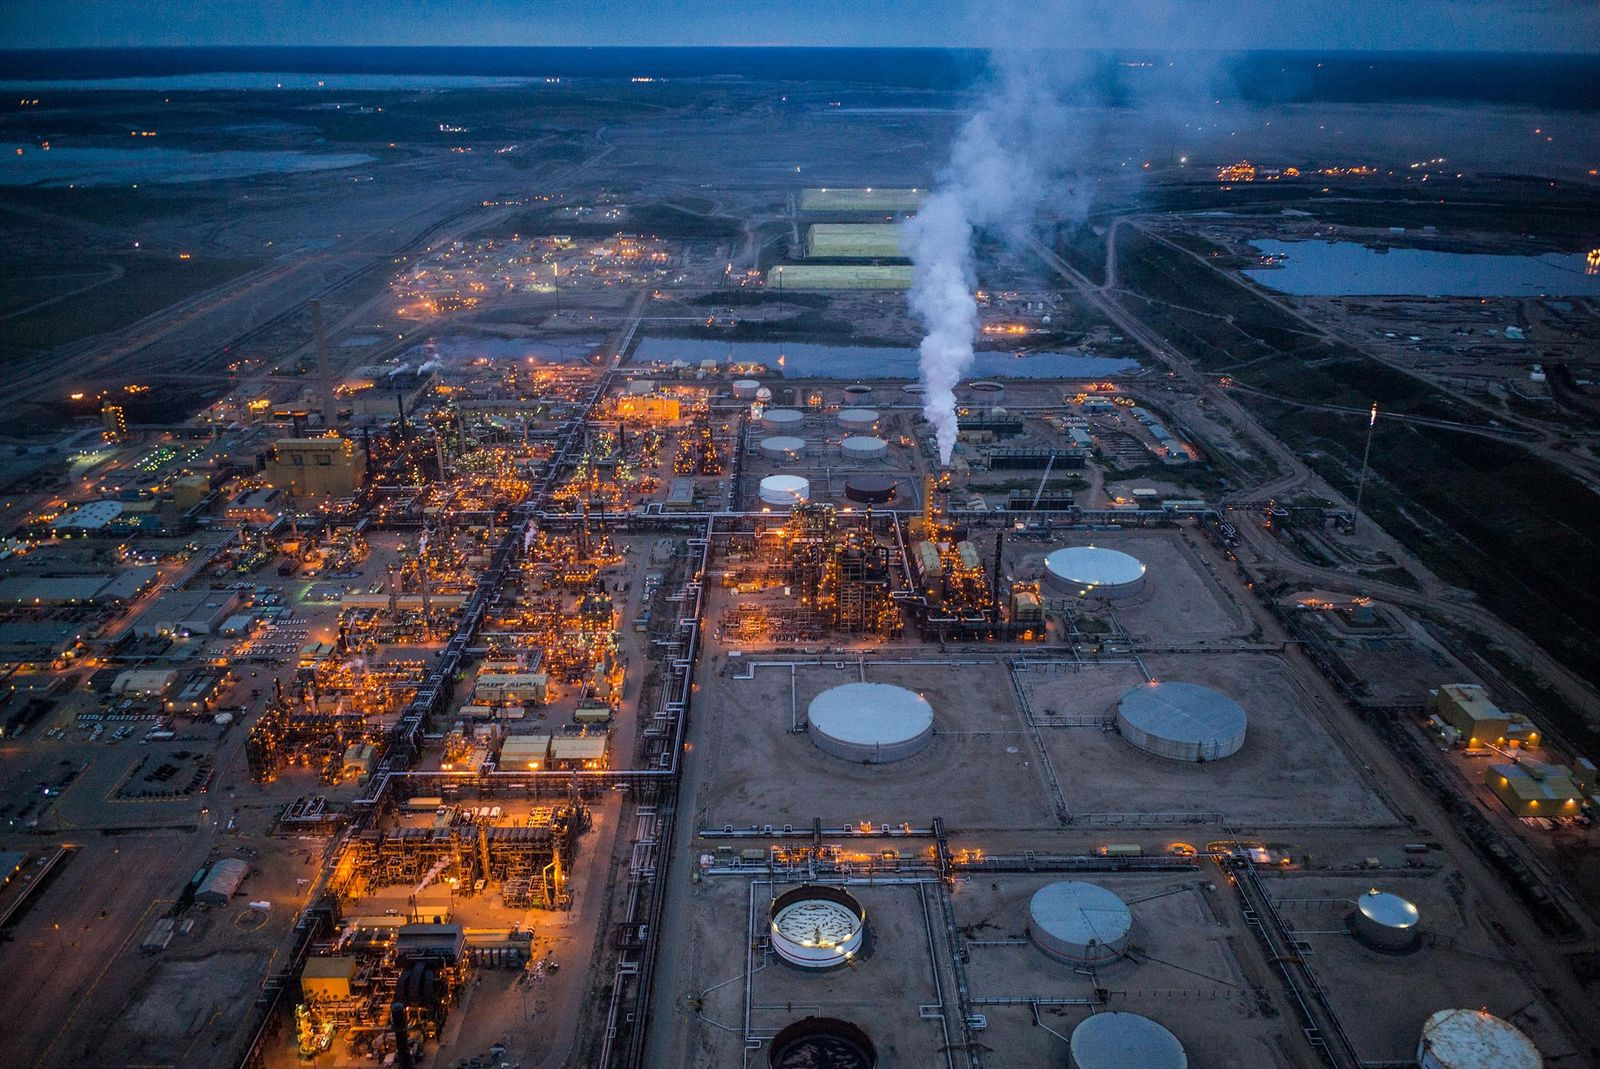 This is the world's most destructive oil operation—and it's growing